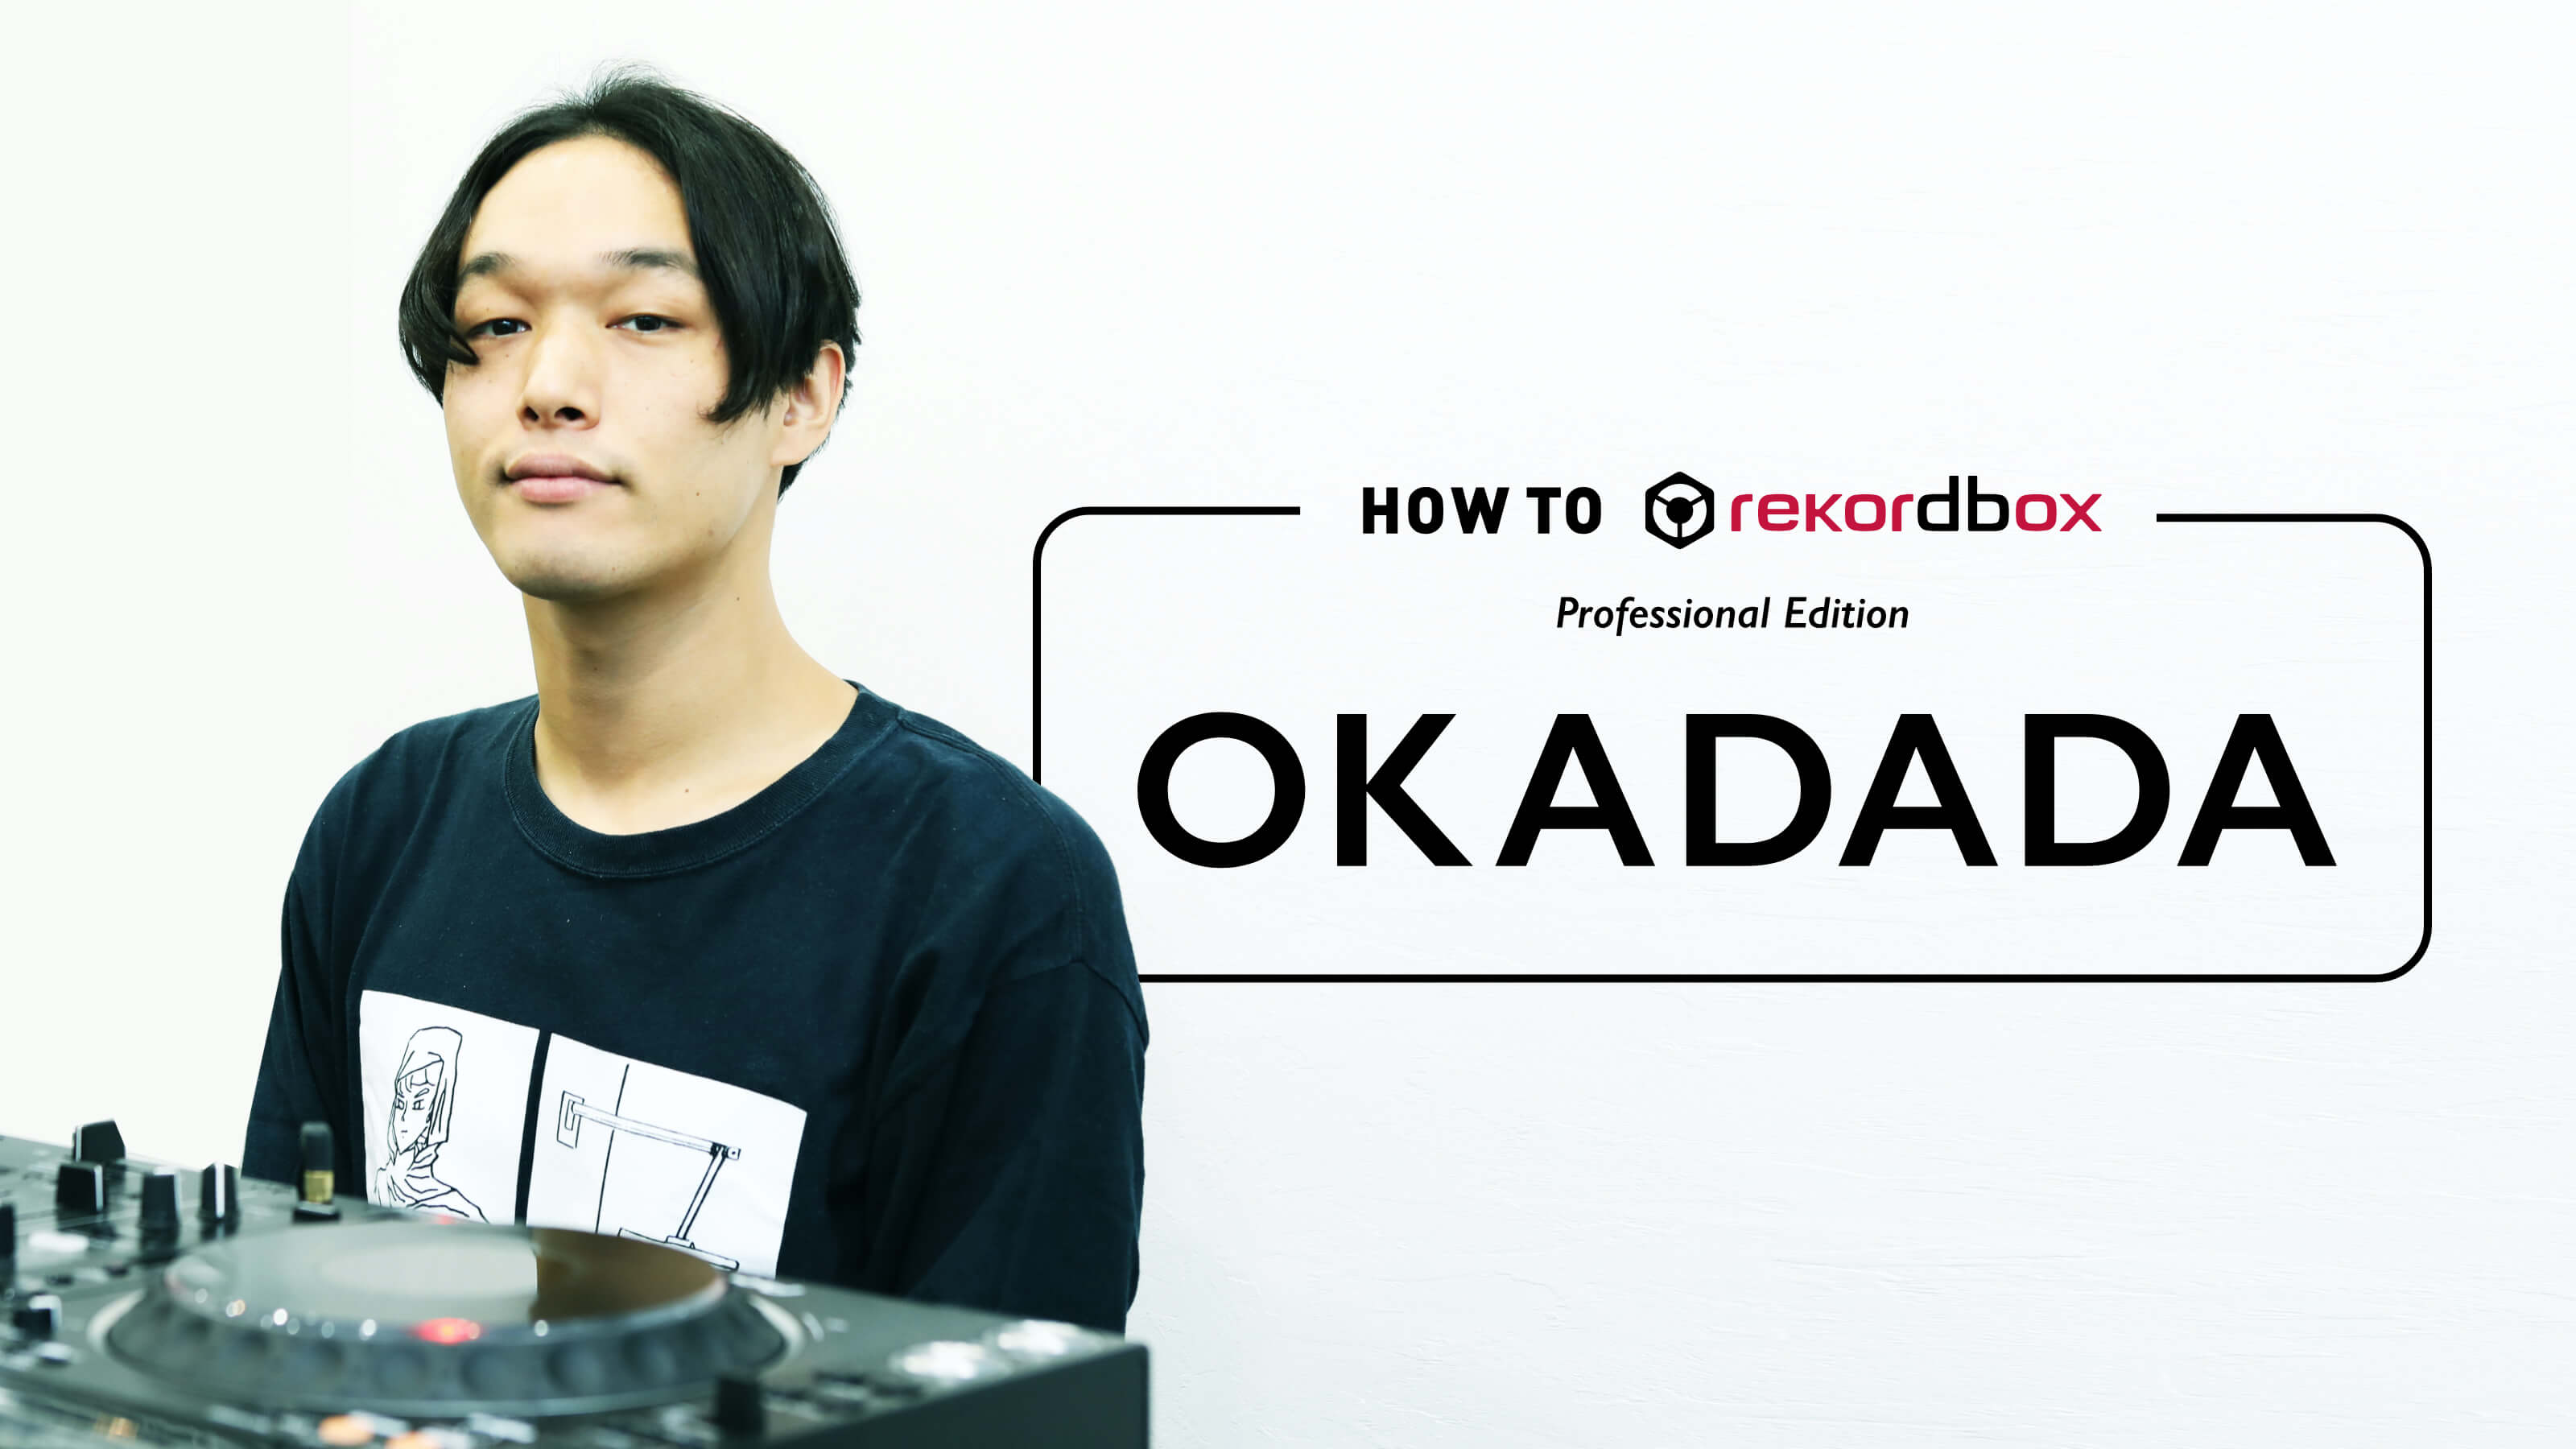 Okadada - HOW TO rekordbox